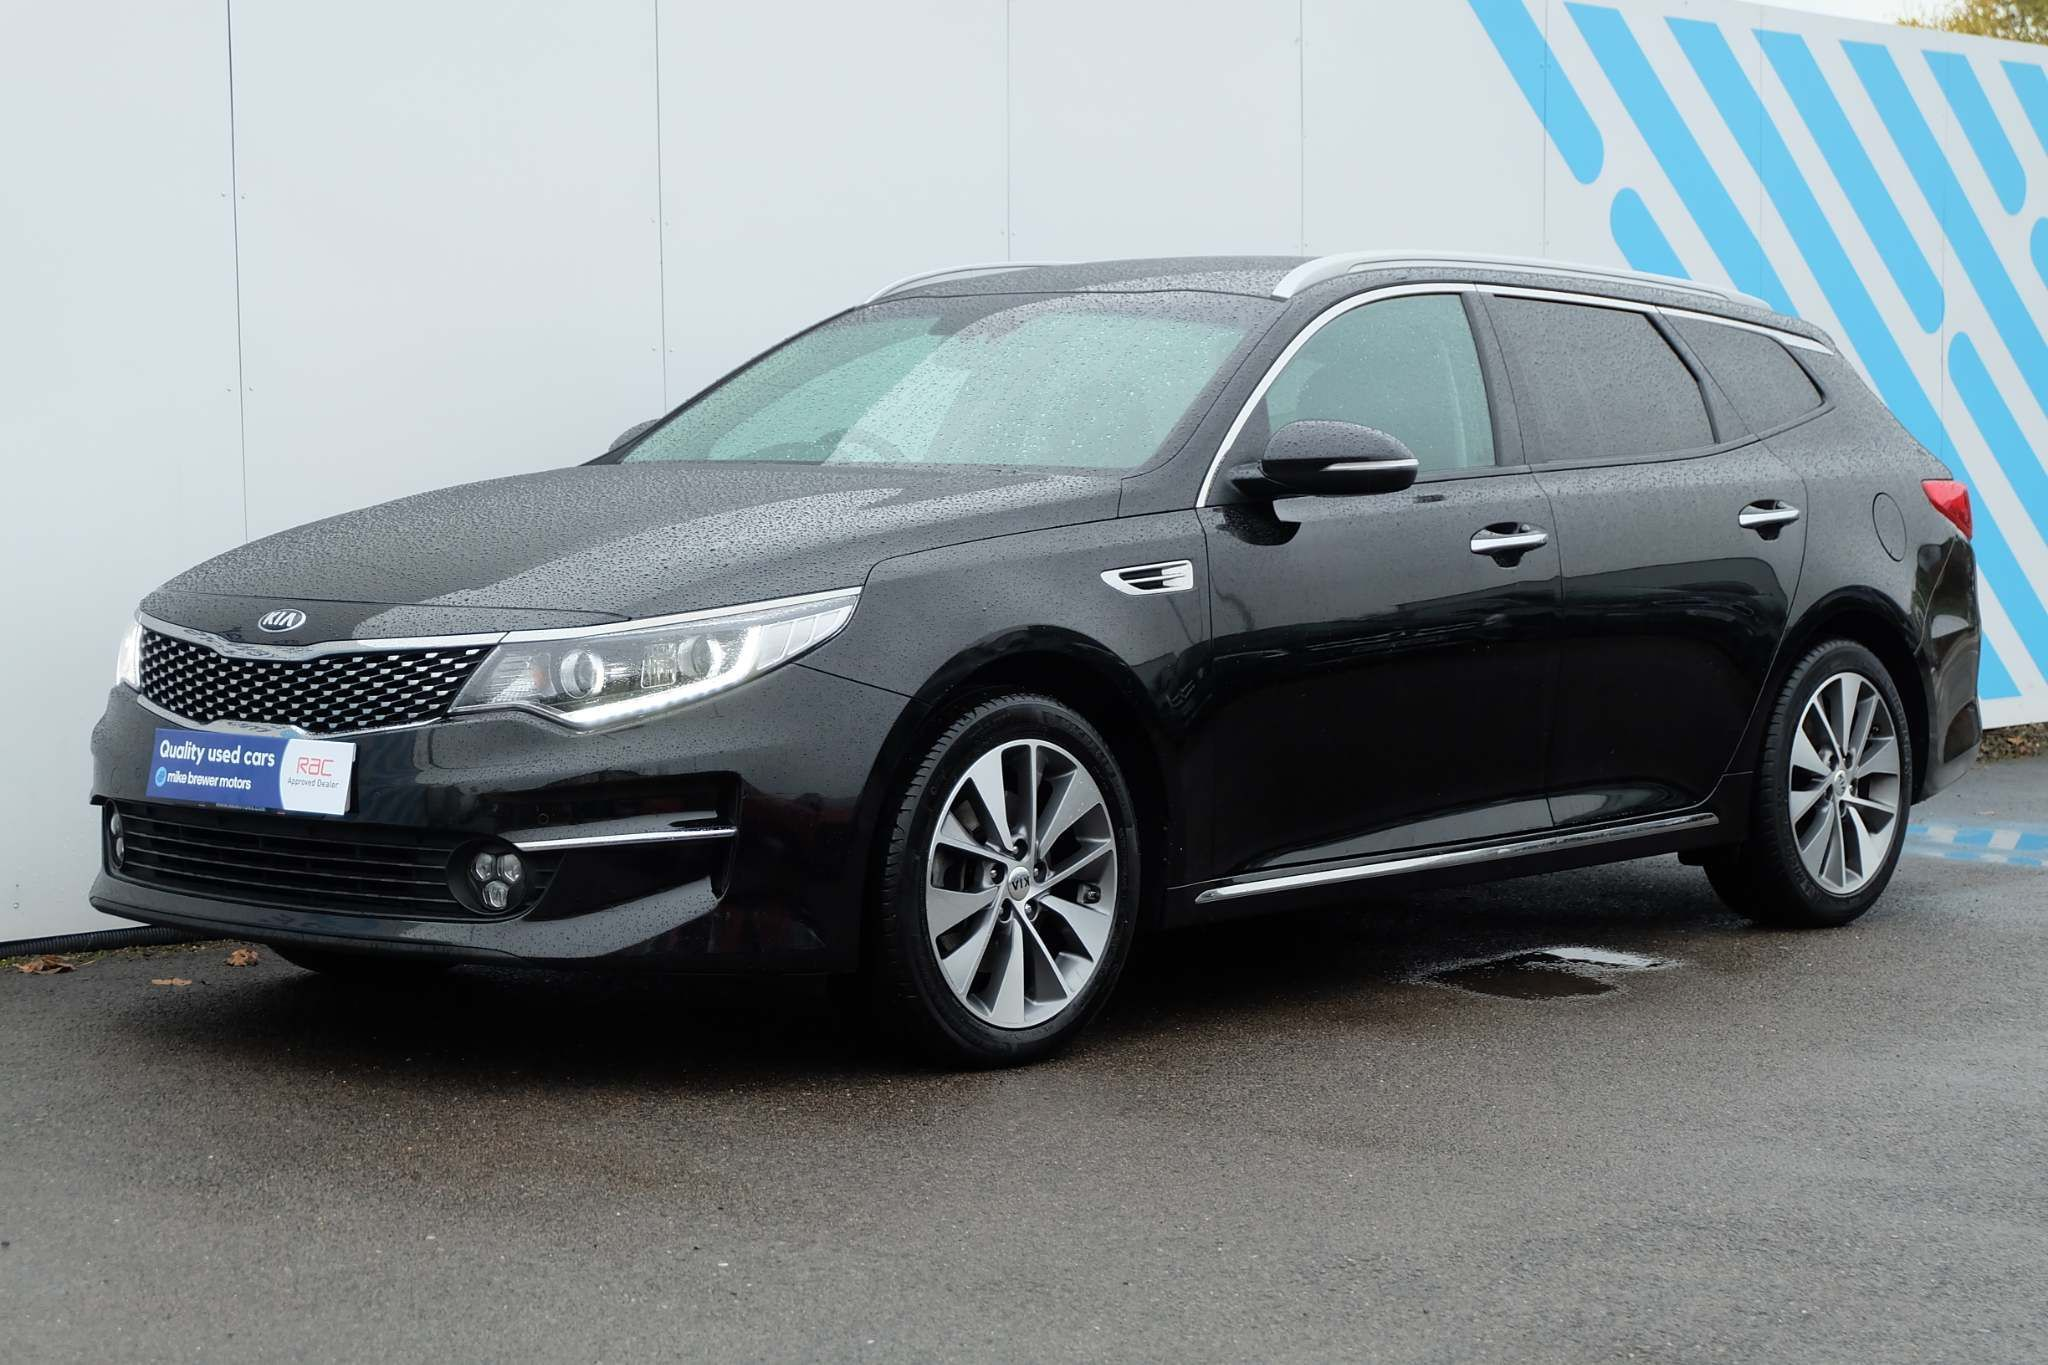 Used Kia Optima 1.7 Crdi 3 Sportswagon Dct (s/s) 5dr